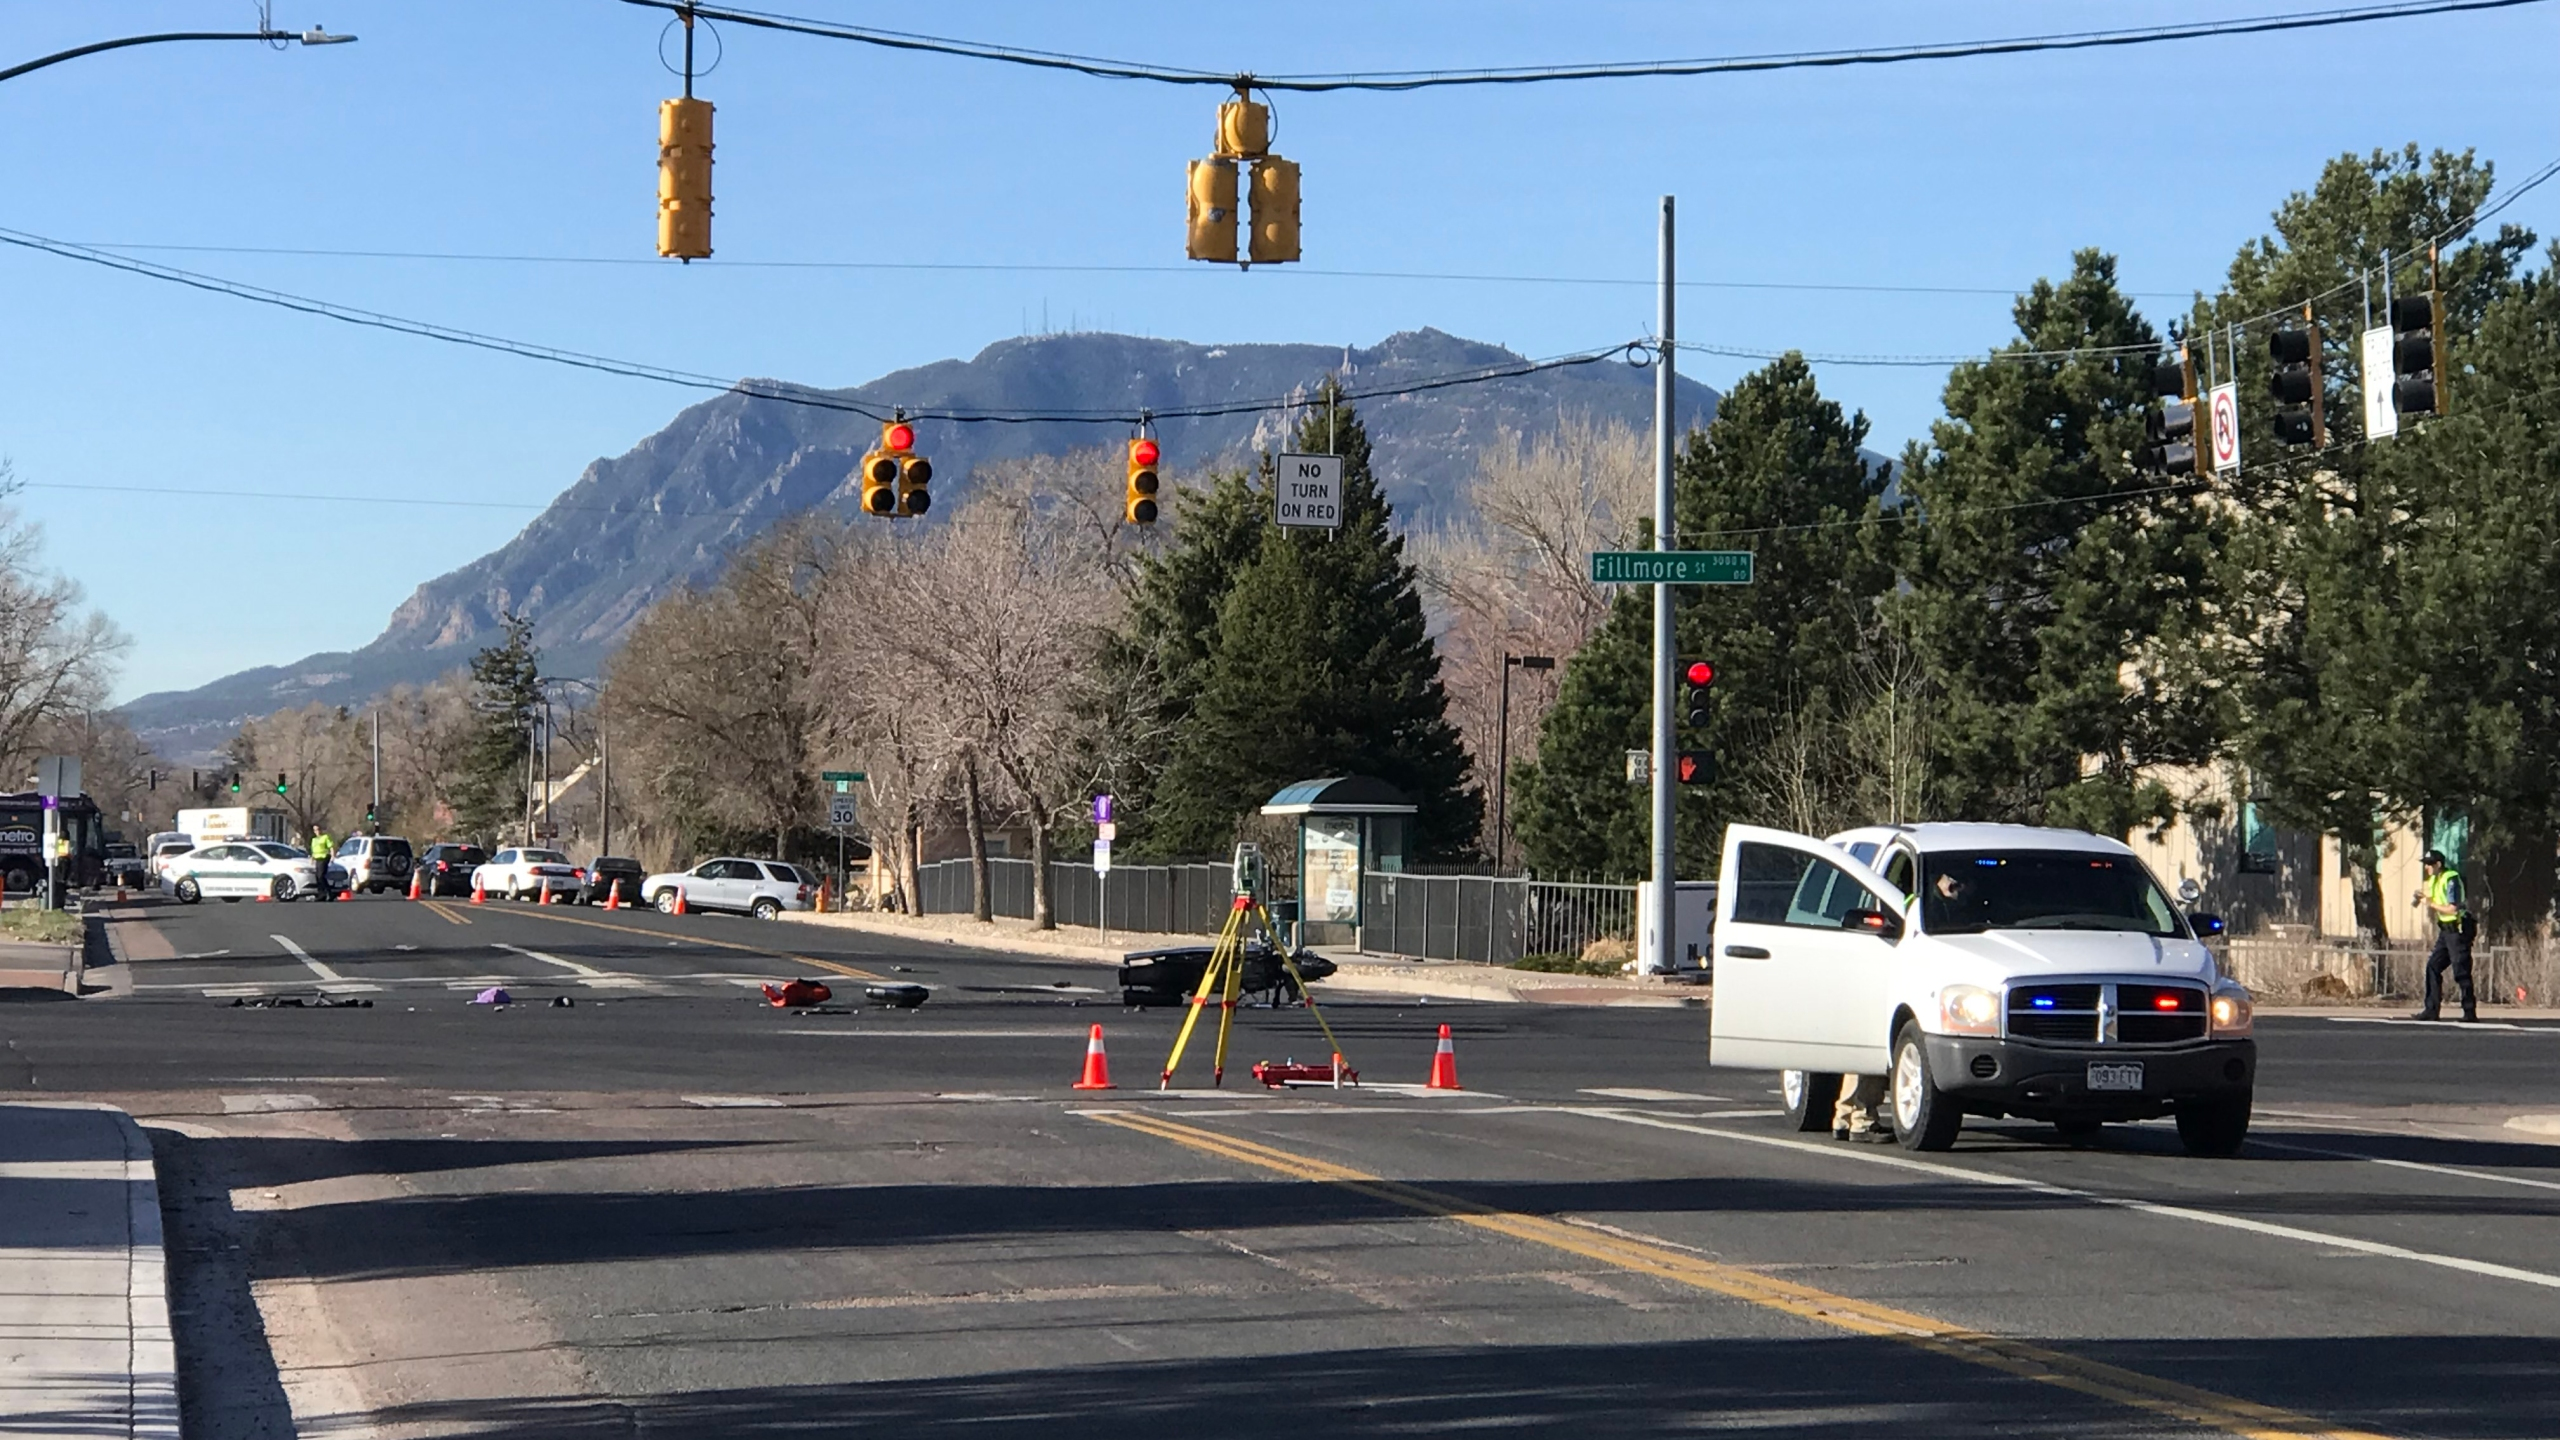 Police investigate a serious crash at the intersection of Fillmore Street and Cascade Avenue Monday morning. Shawn Shanle - FOX21 News